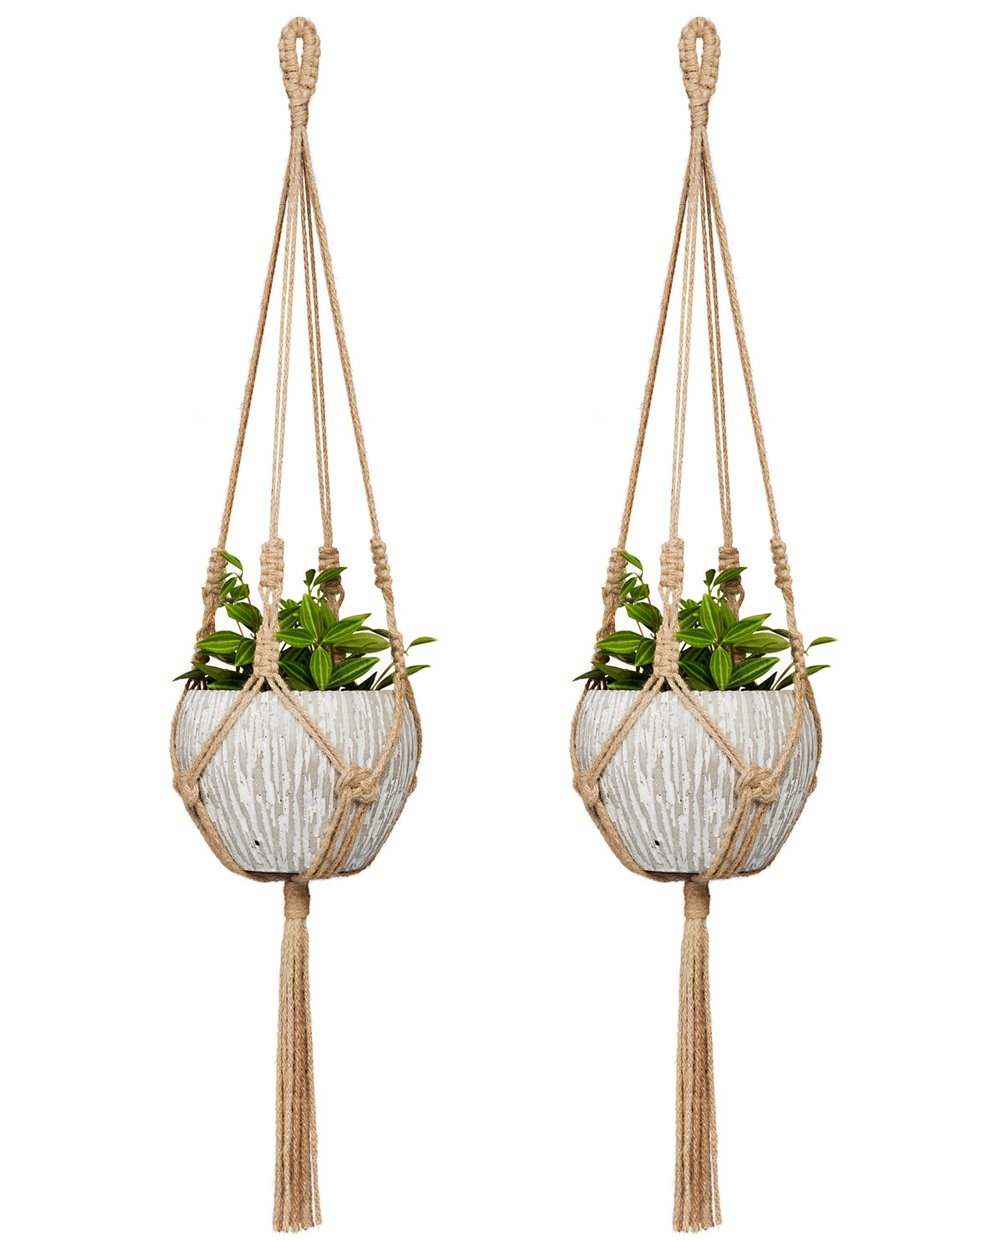 Mkono Small Macrame Plant Hangers Jute Hanging Planter 30 Inch Fit Small Pot Up to 6 Inch Indoor Wall Window Container Holder Basket Home Decor, 2 Packs